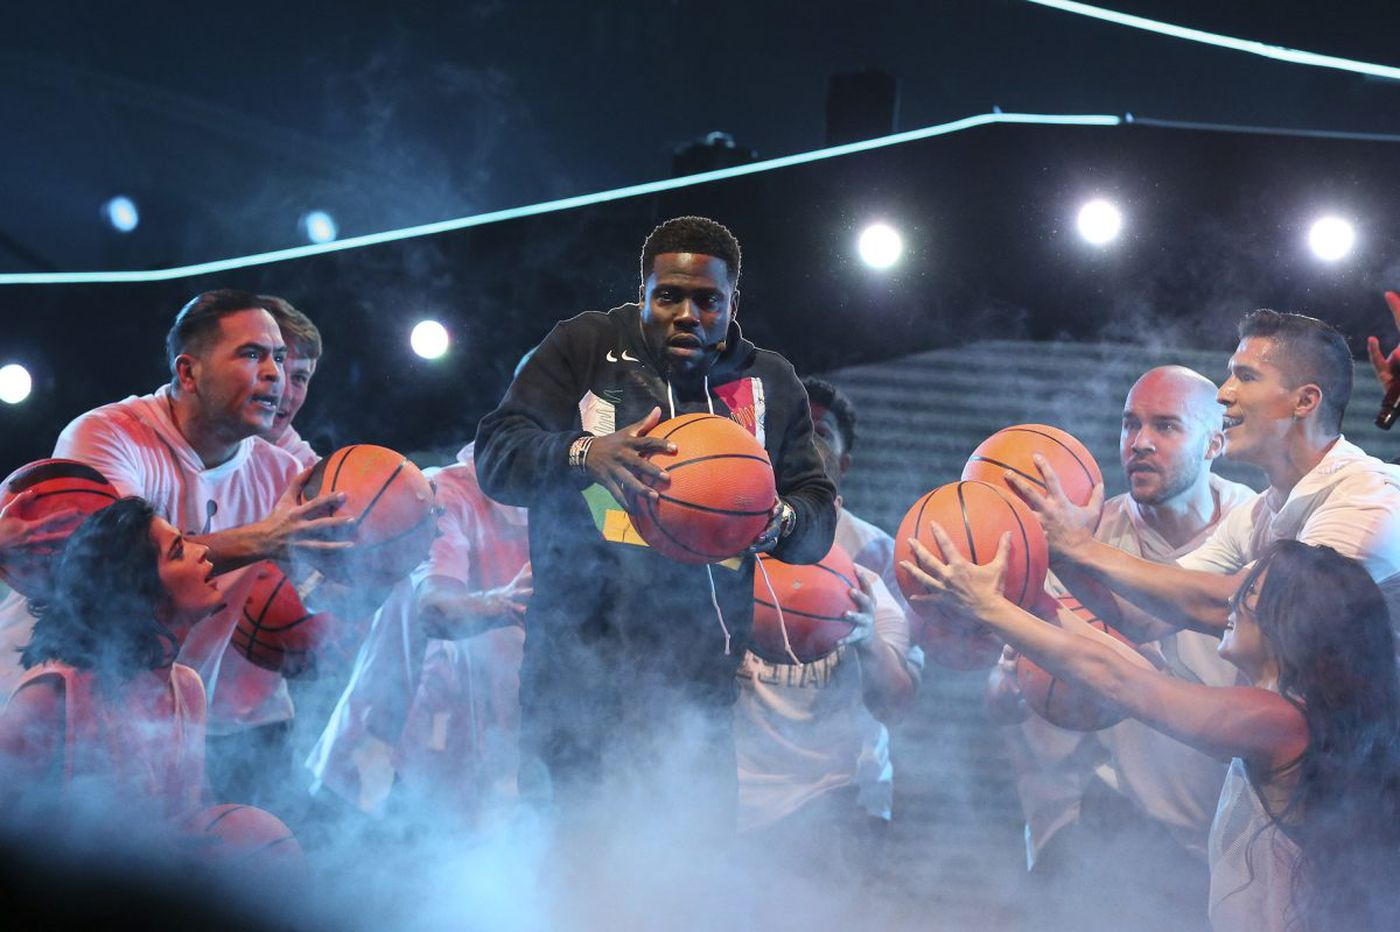 The Internet hated Kevin Hart's NBA All-Star Game intro almost as much as Fergie's National Anthem